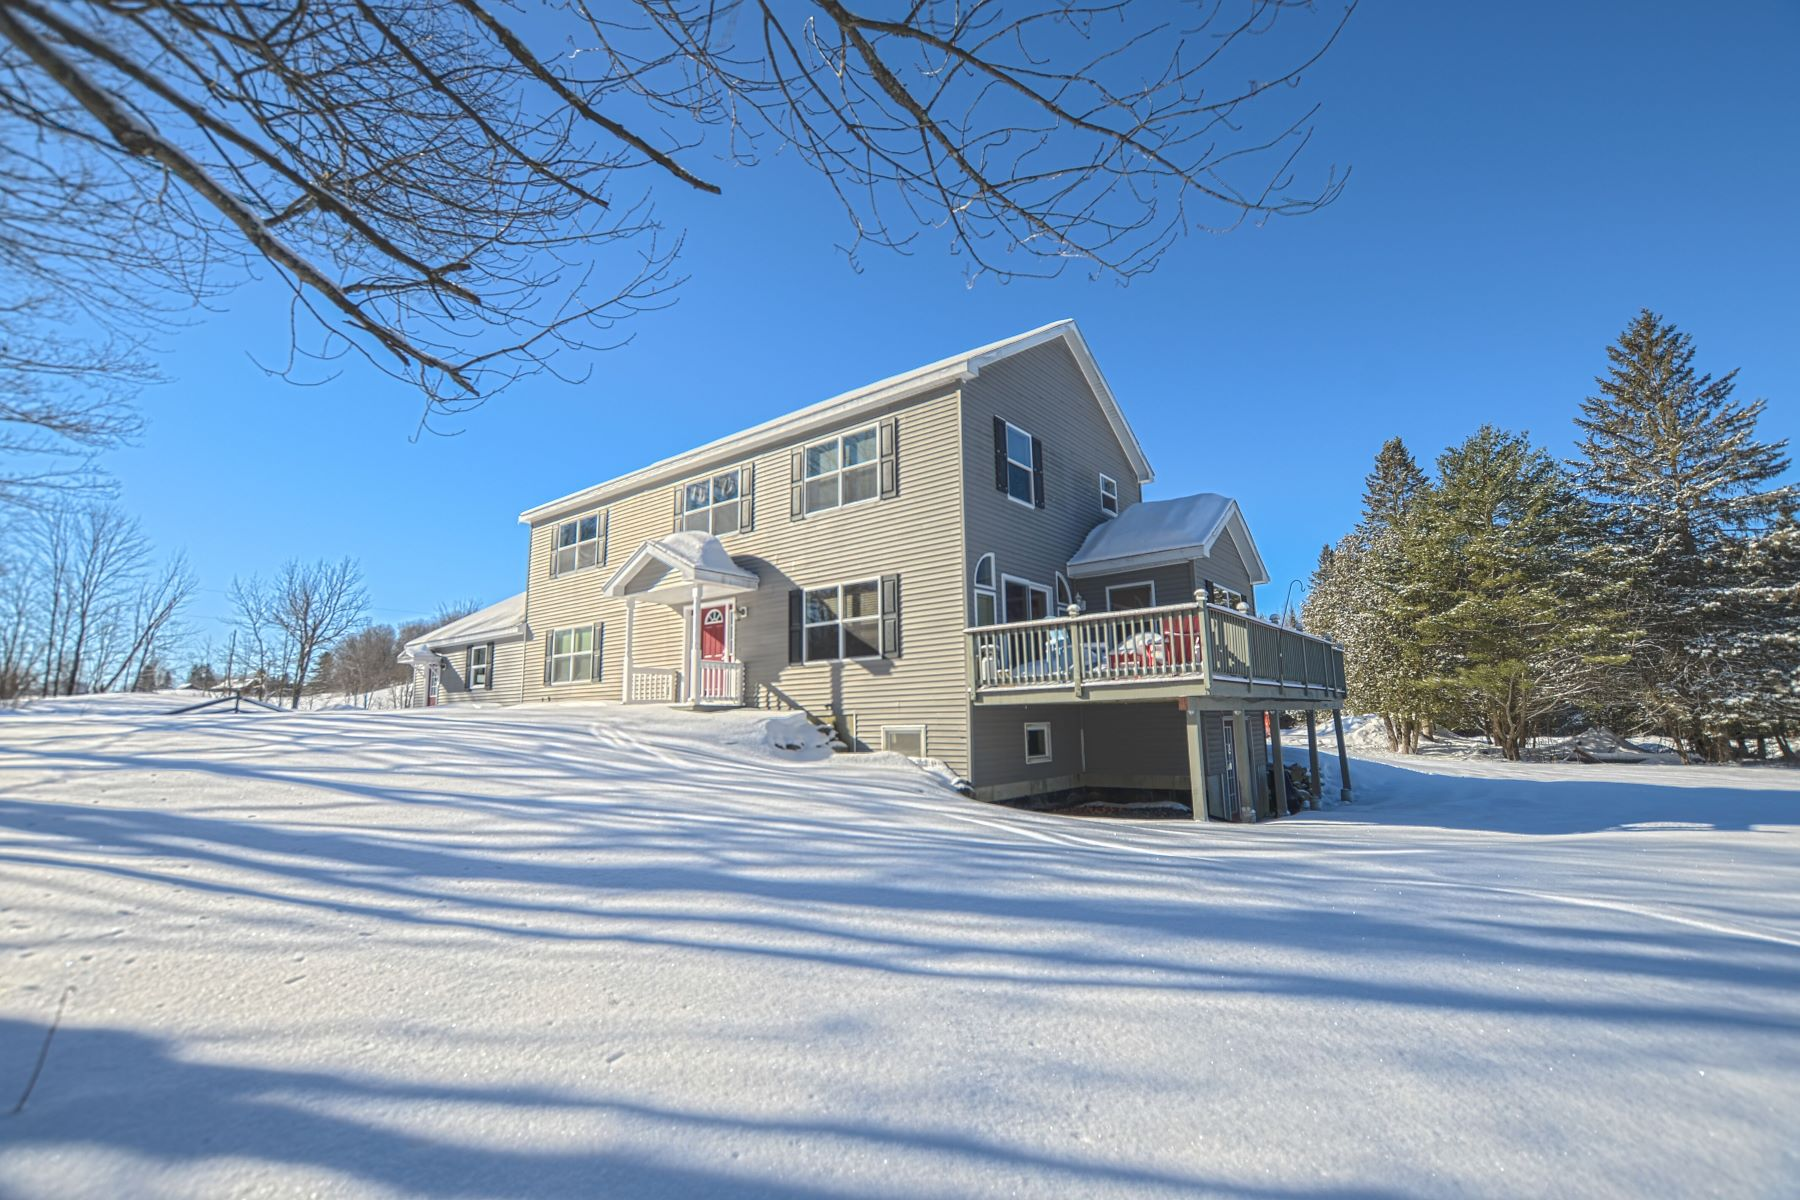 Single Family Home for Sale at 360 Old Schoolhouse Road, Newbury 360 Old Schoolhouse Rd Newbury, Vermont 05051 United States